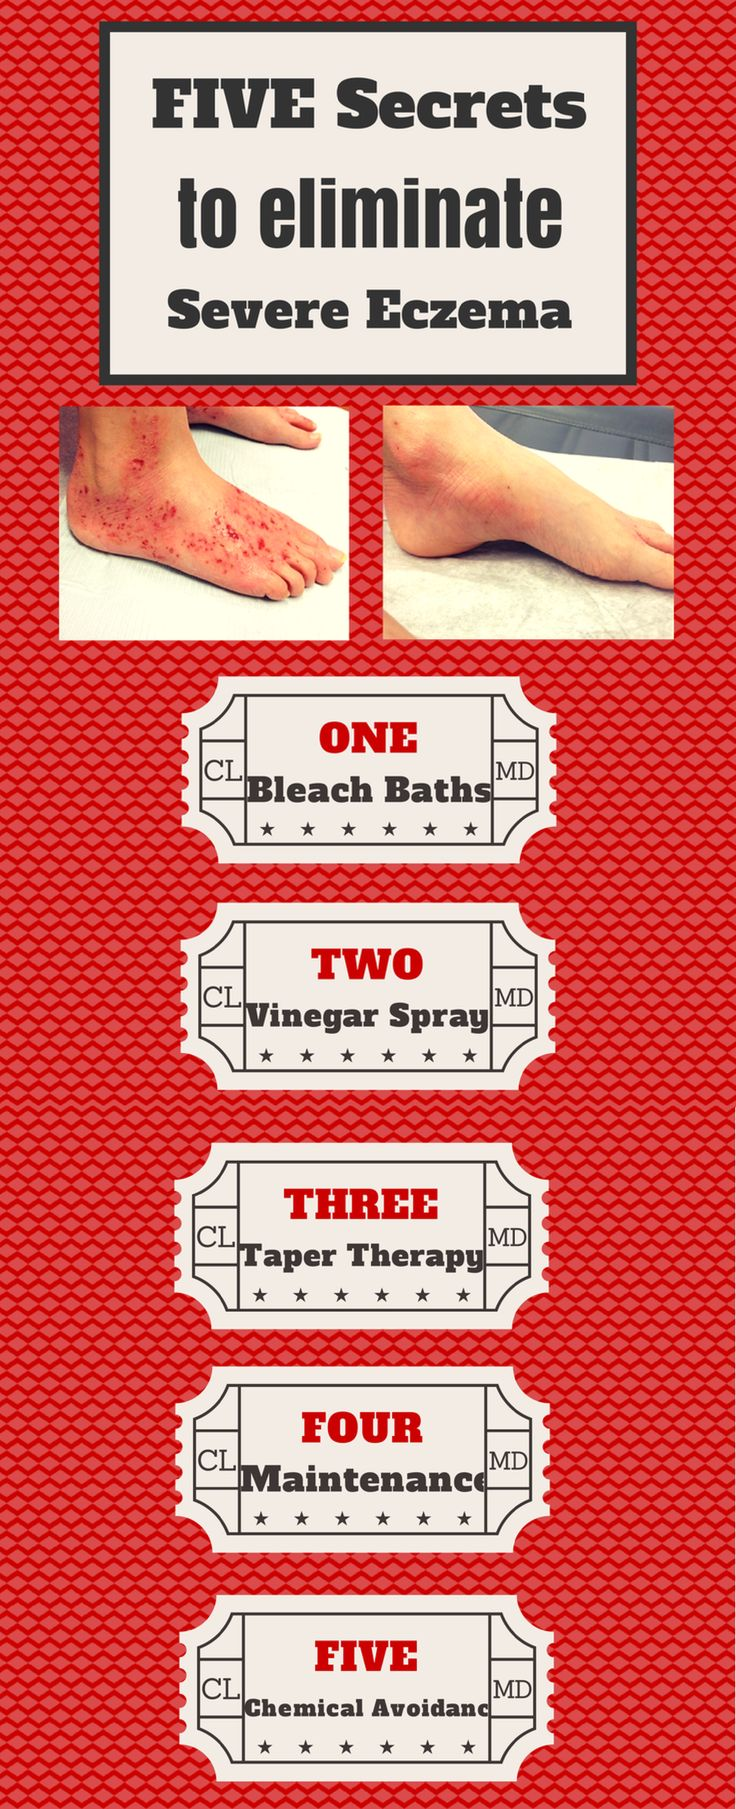 5 Secrets to eliminate severe eczema! Combine things like wet wraps, bleach baths, and TrueLipids and your eczema doesn't stand a chance! See what else is on the list...